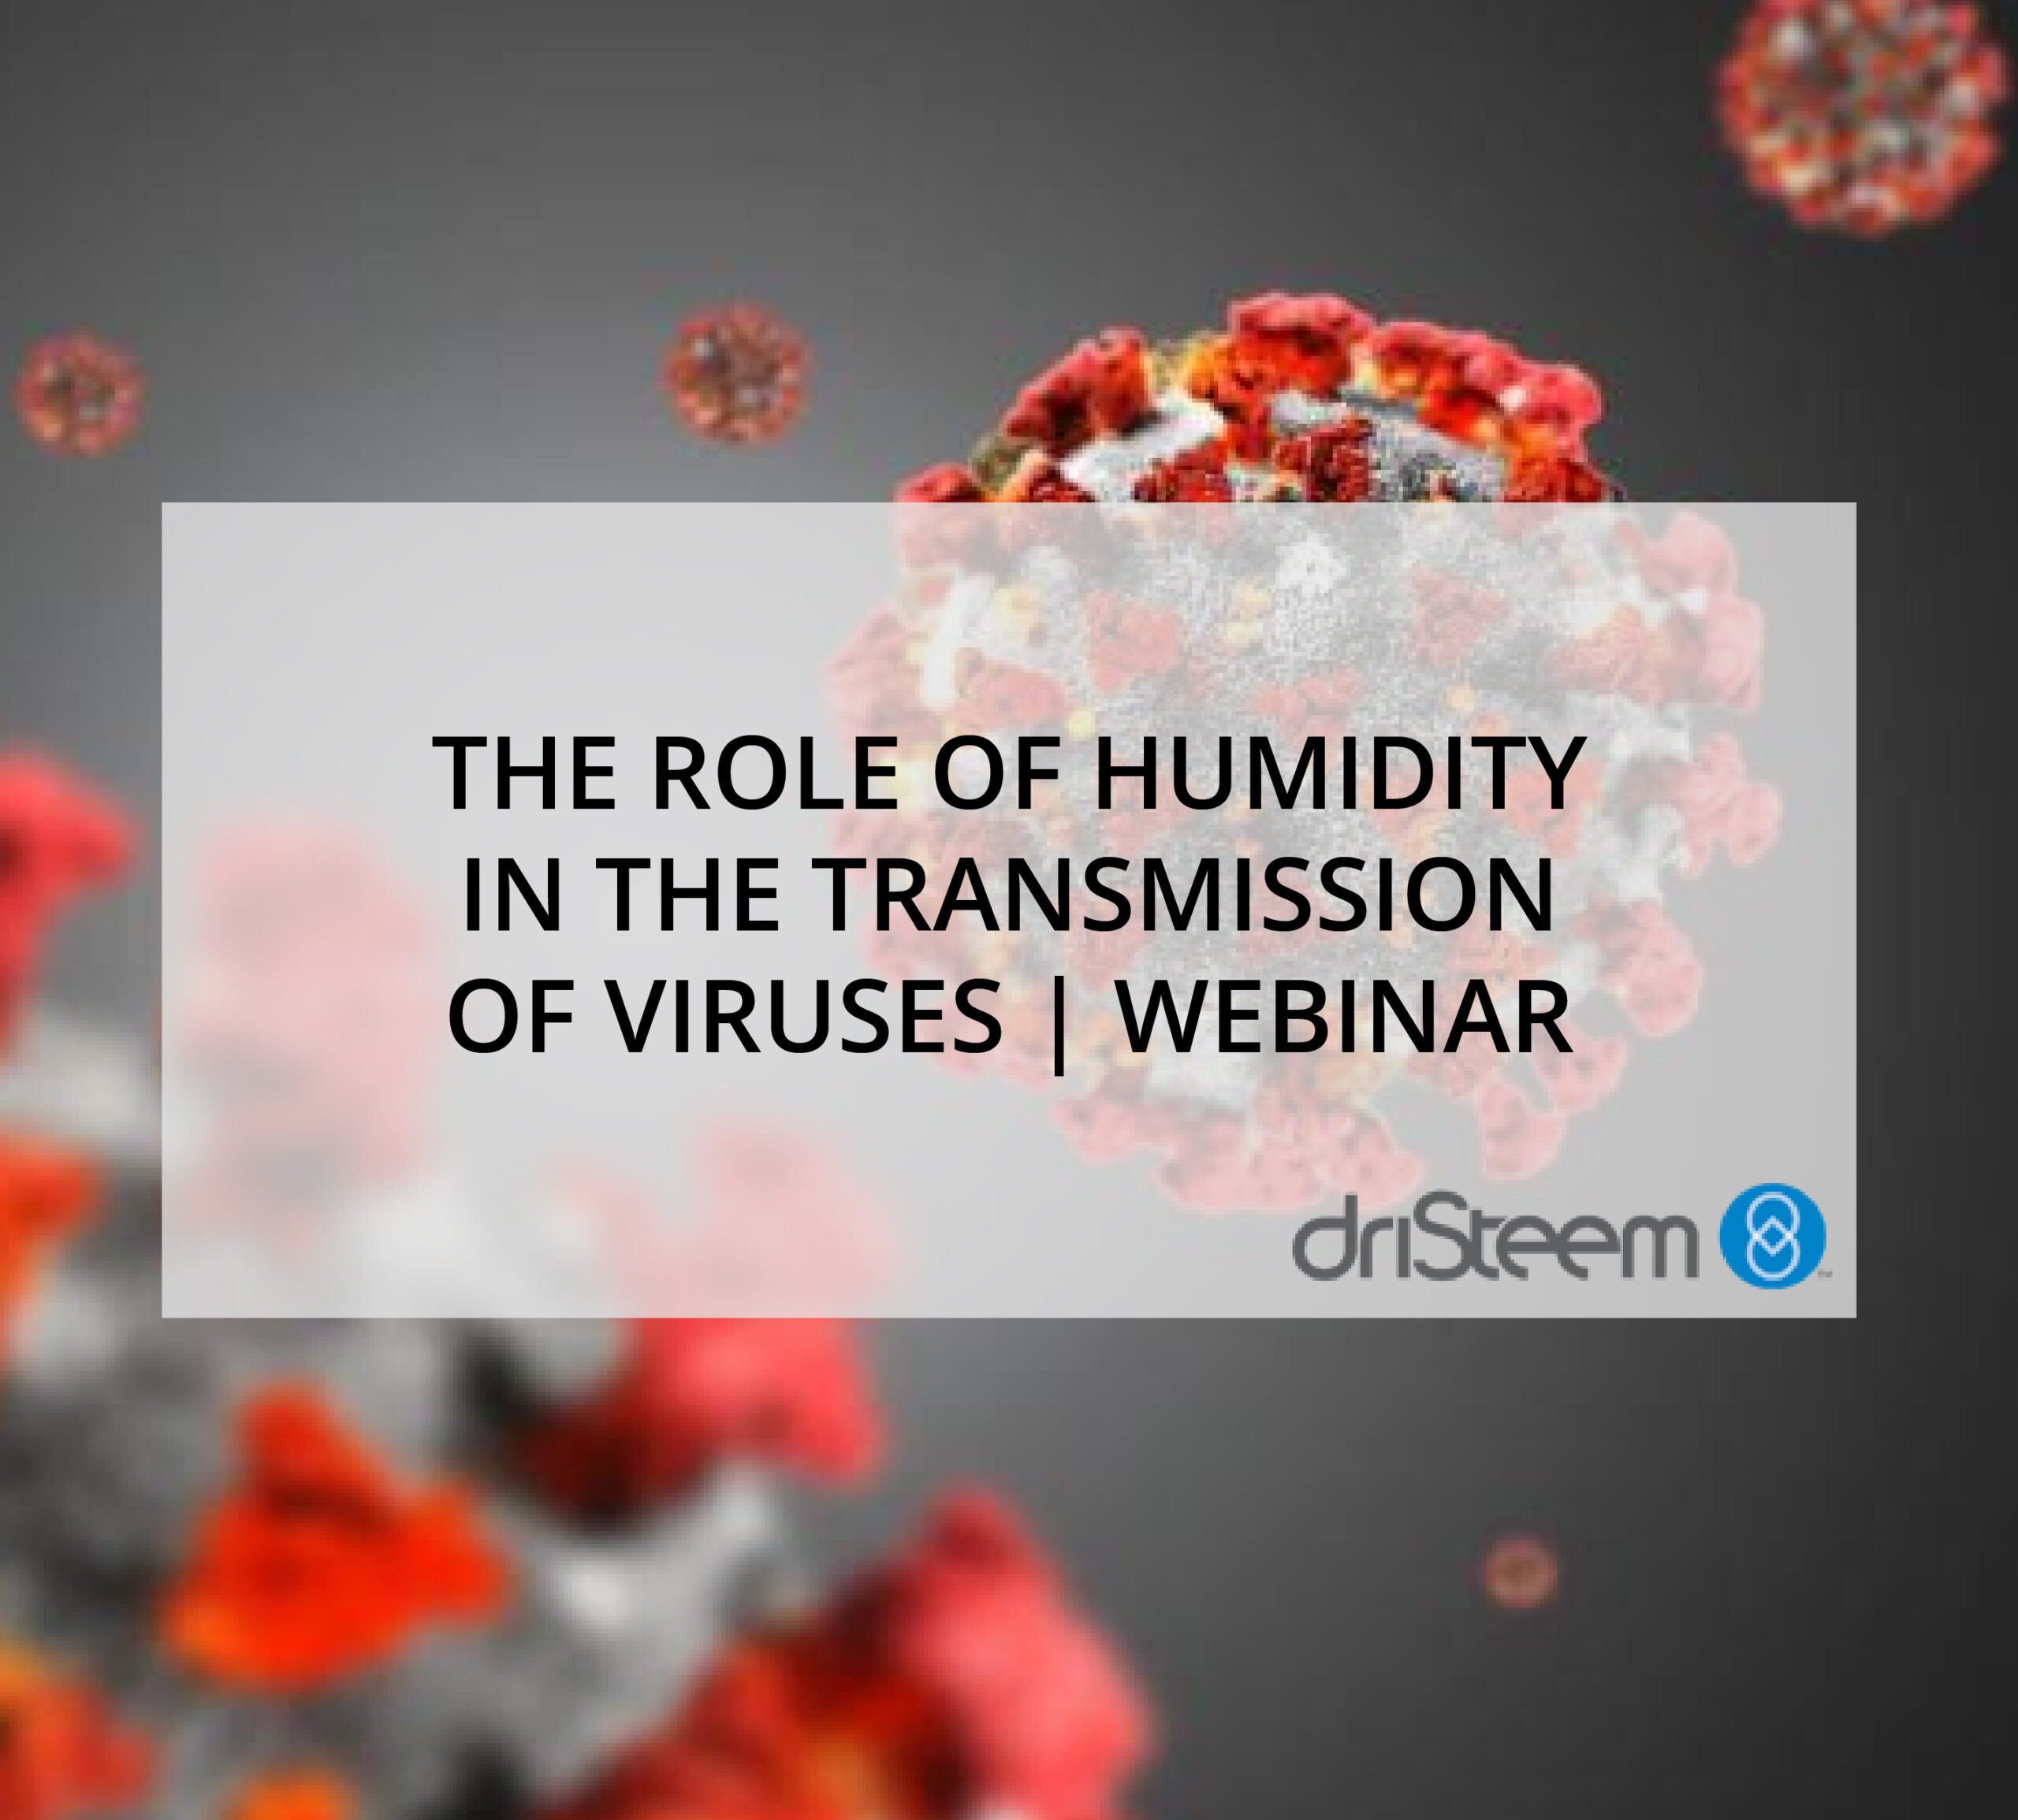 THE ROLE OF HUMIDITY IN THE TRANSMISSION OF VIRUSES   DRISTEEM WEBINAR